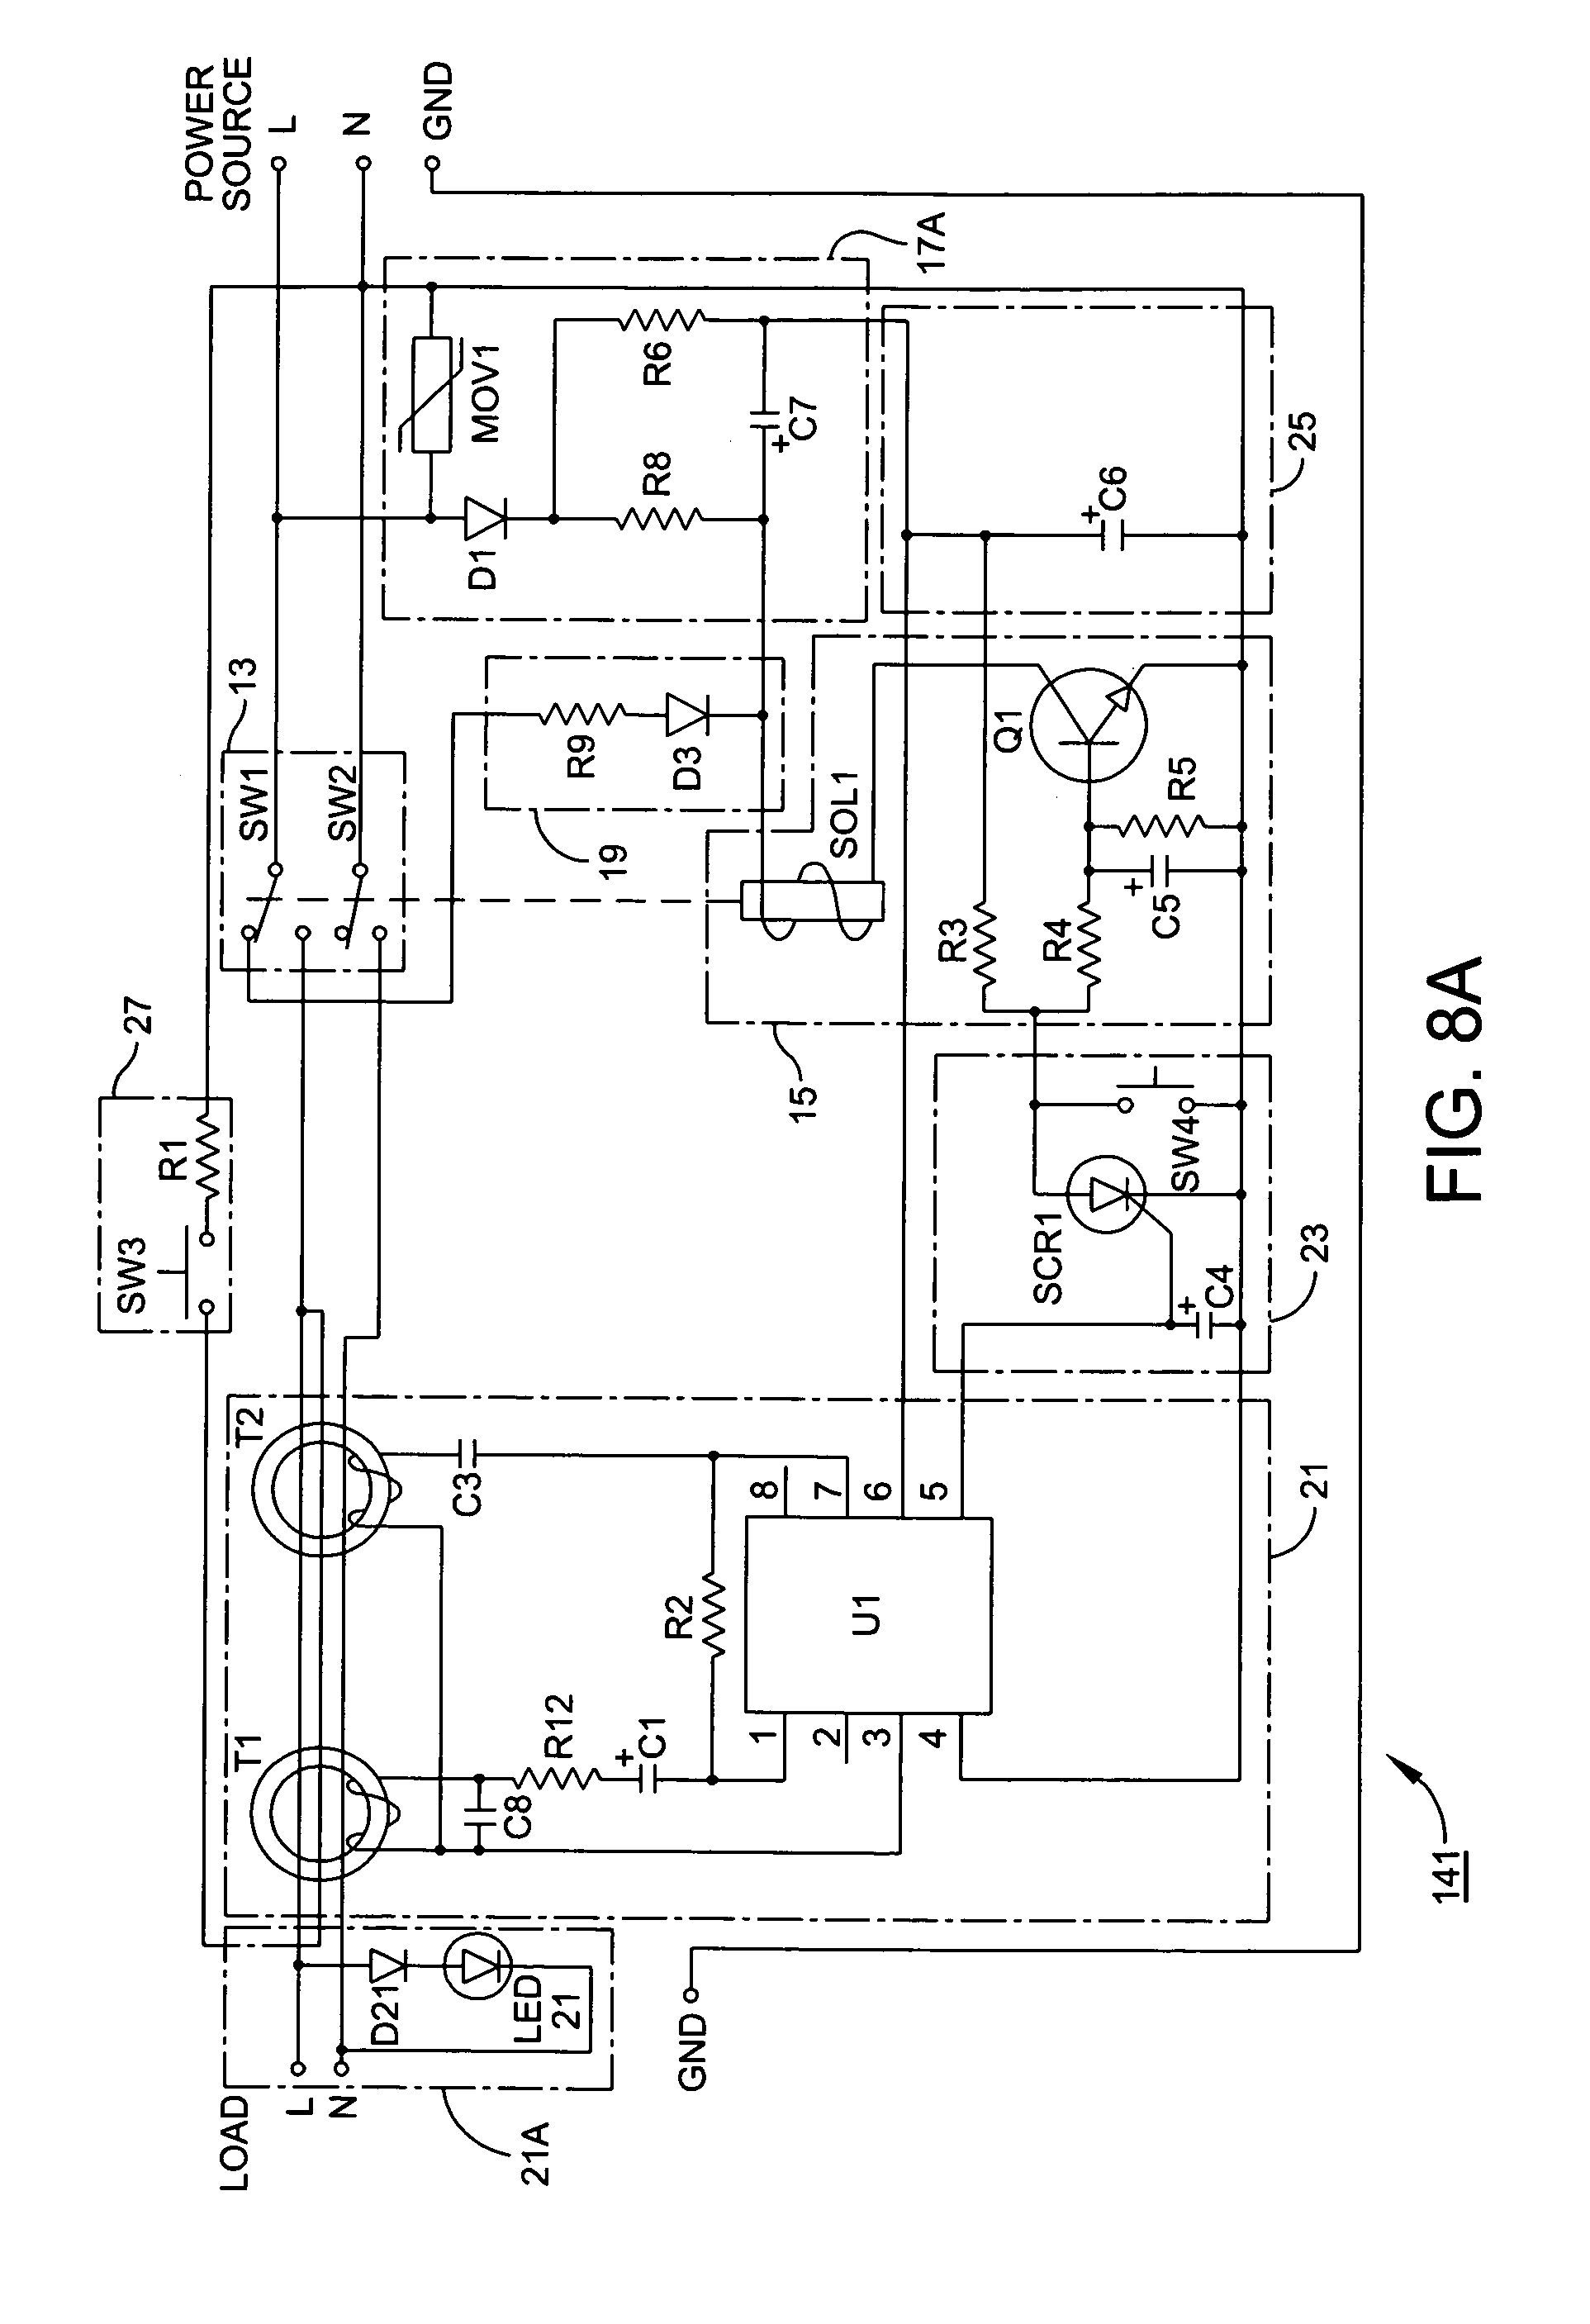 Rc Reset Circuit Diagram Powersupplycircuit Patent Us20140098446 Universal Ground Fault Interrupter Gfci Drawing